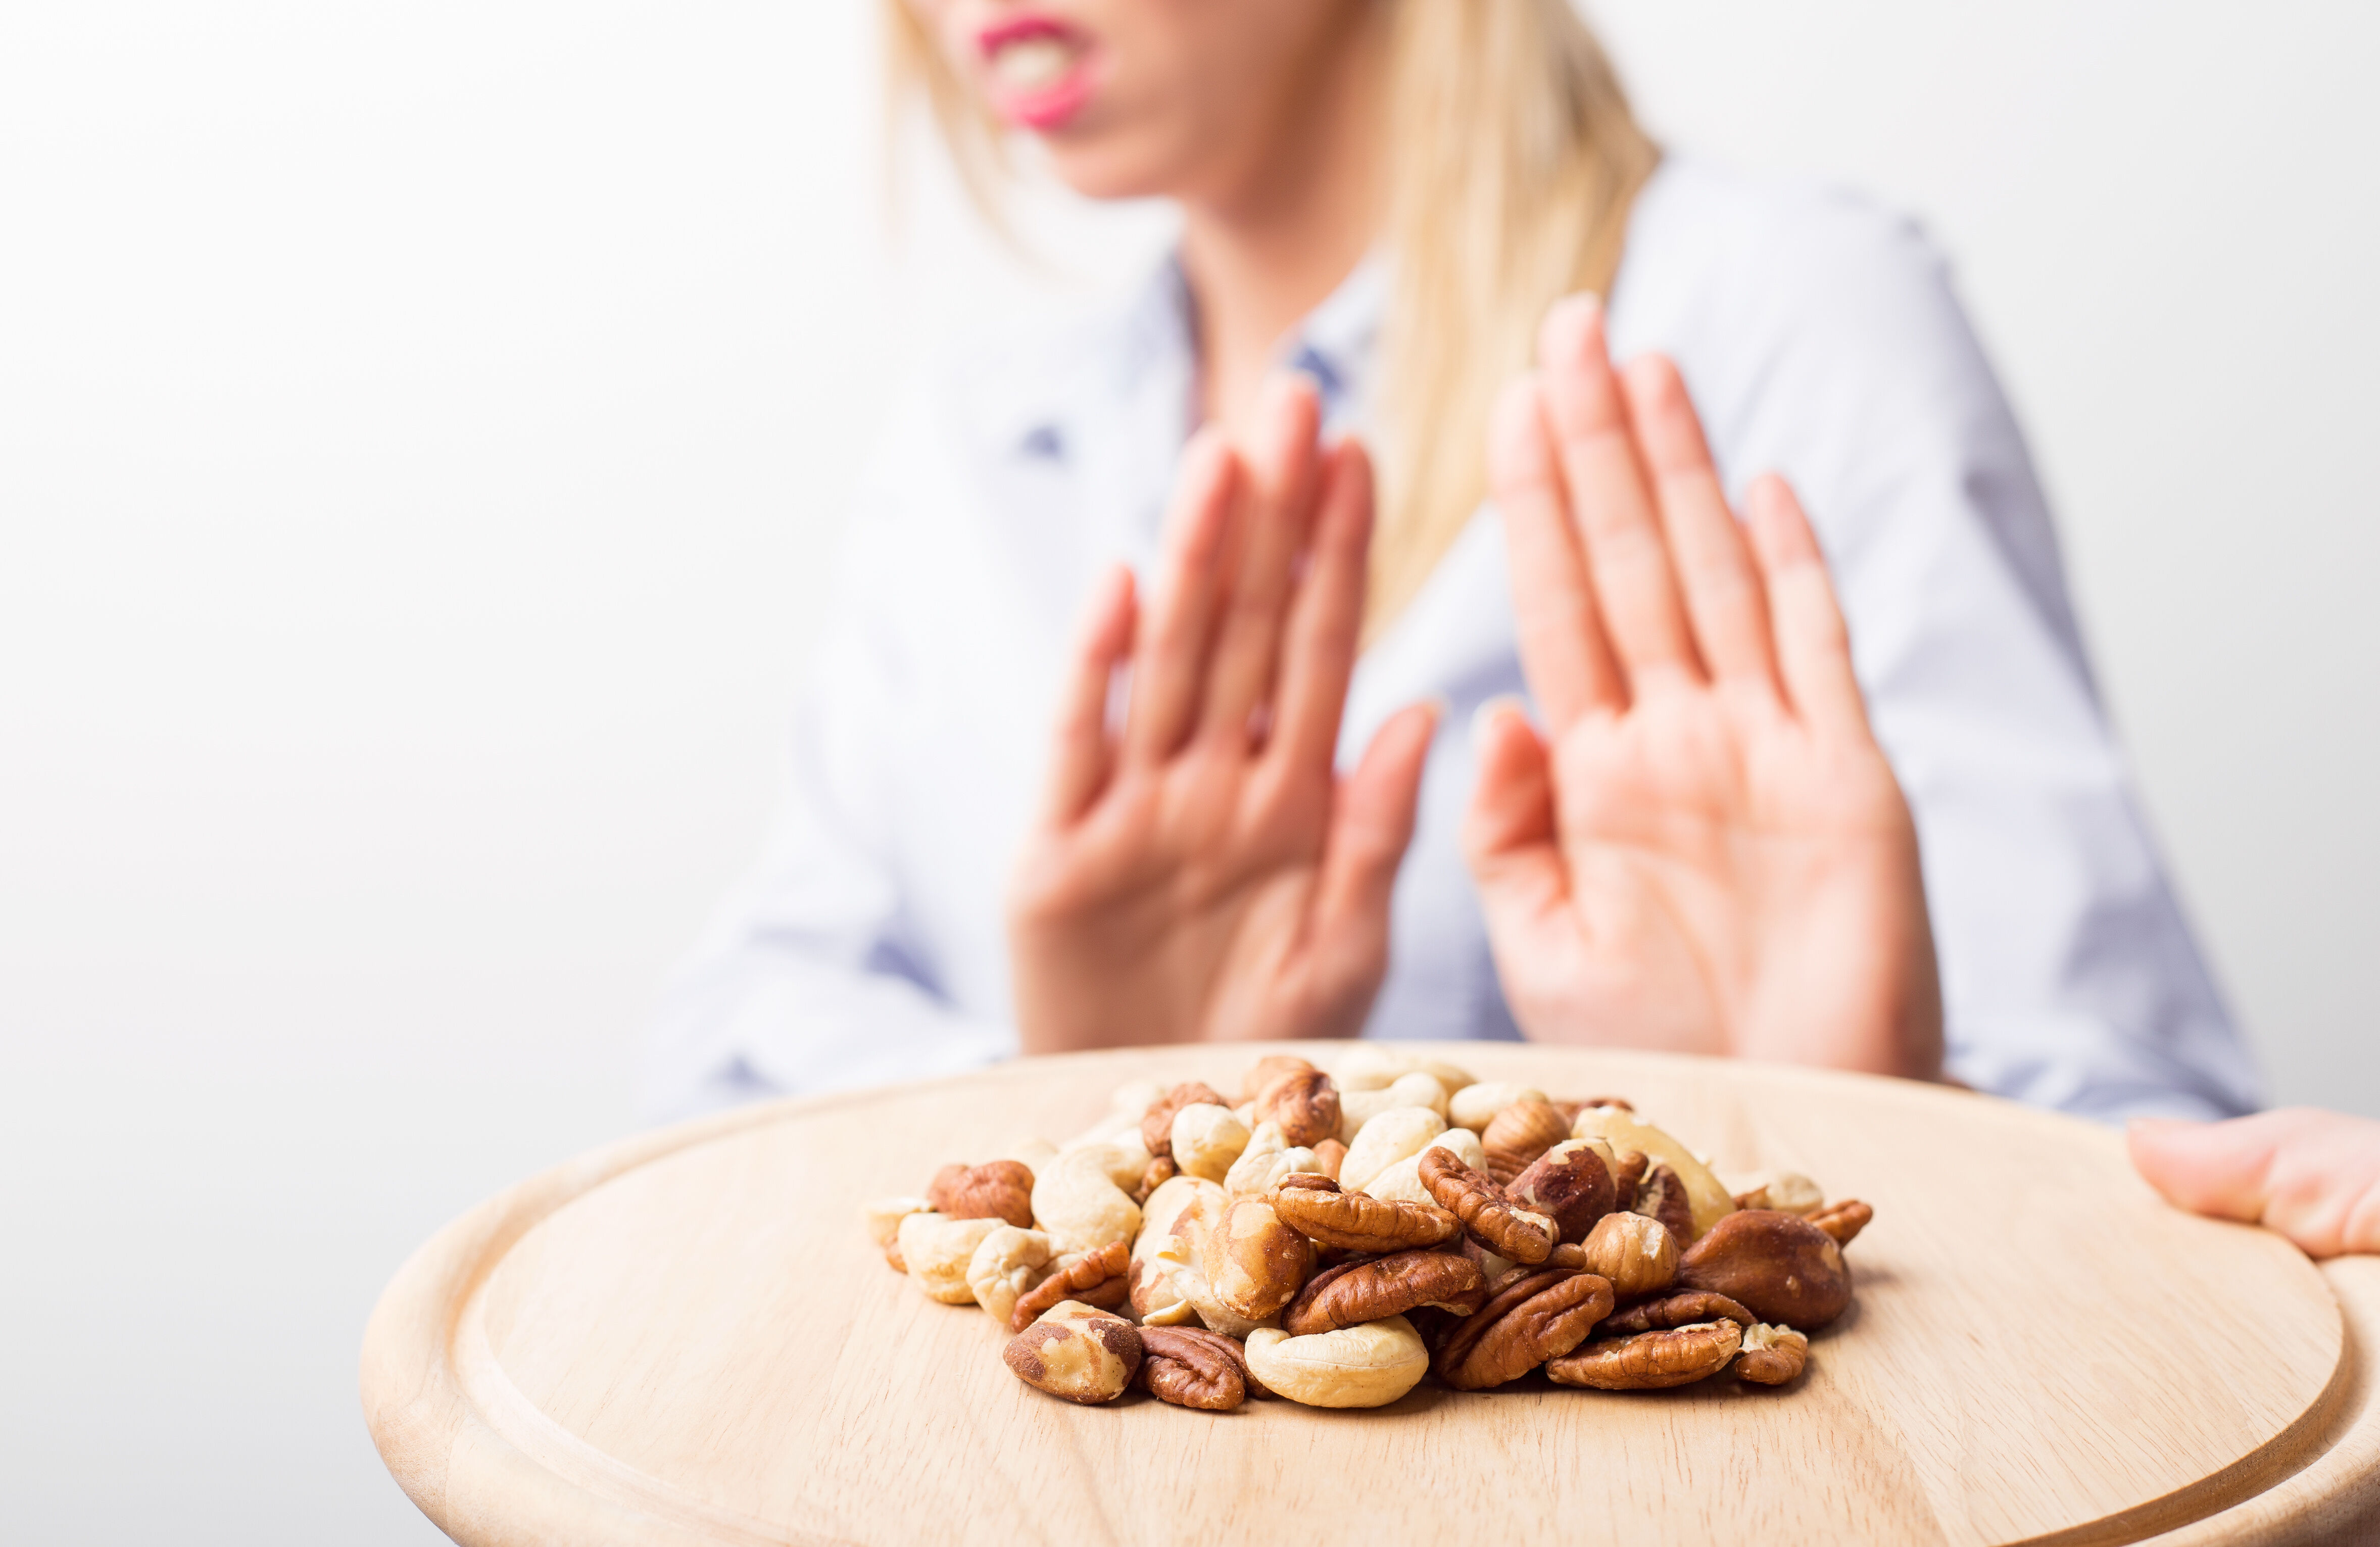 Woman refuses nuts